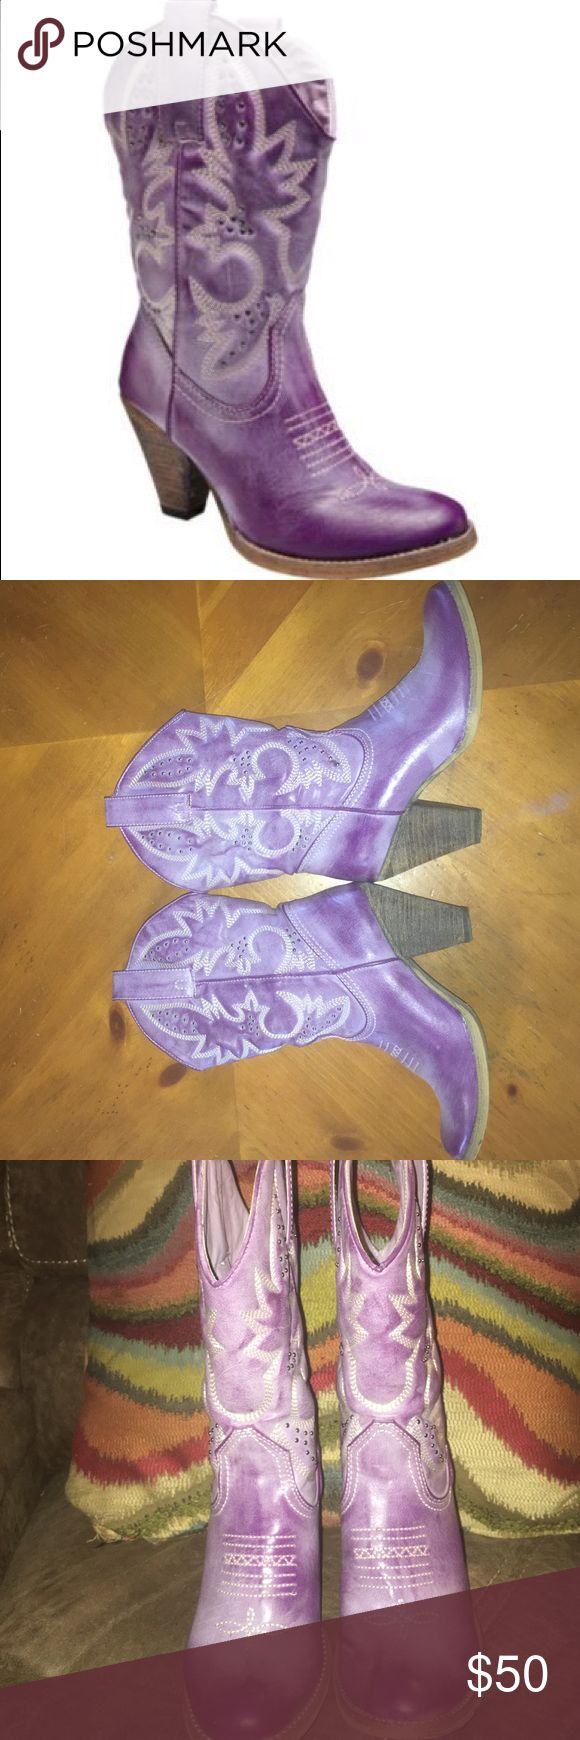 Very volatile lavender/purple cowboy boots If you live anywhere in the south and attend Mardi Gras parades these are perfection. They have been worn less than five times and are so extremely comfortable. I paid a lot of money for these but just don't get a lot of wear out of them. My loss is your gain. No damage whatsoever. very volatile Shoes Heeled Boots